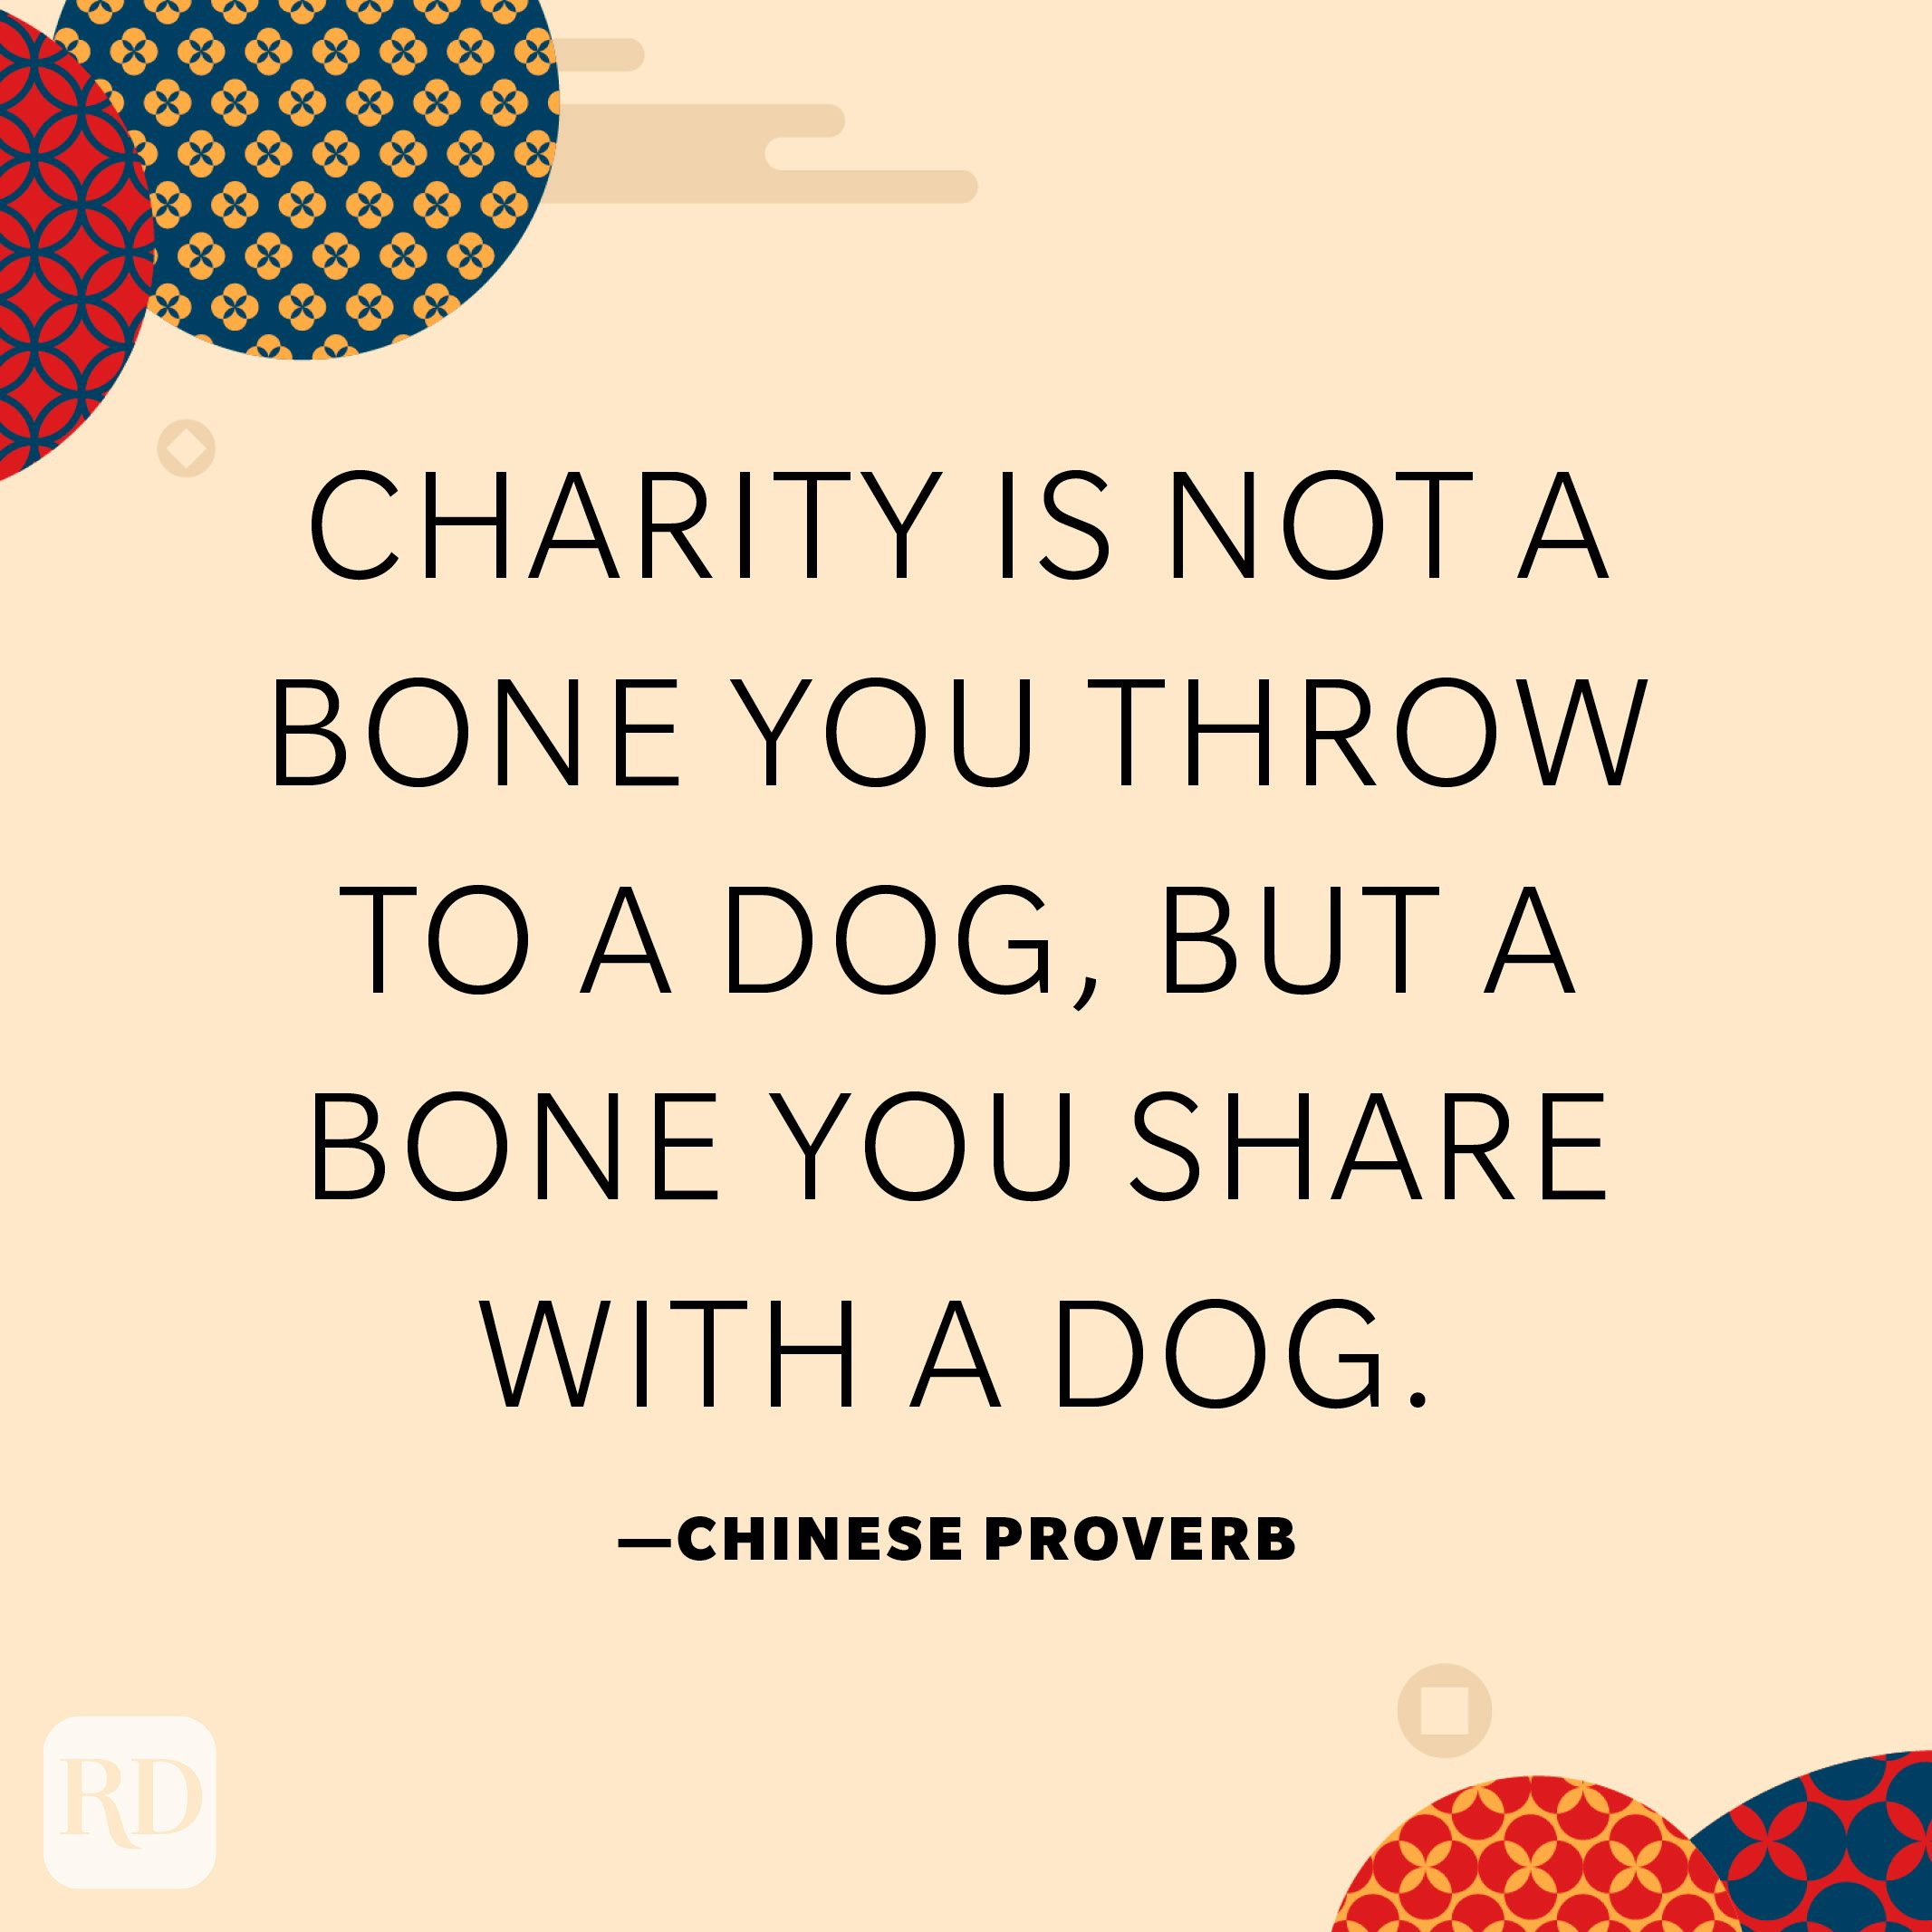 Charity is not a bone you throw to a dog, but a bone you share with a dog.